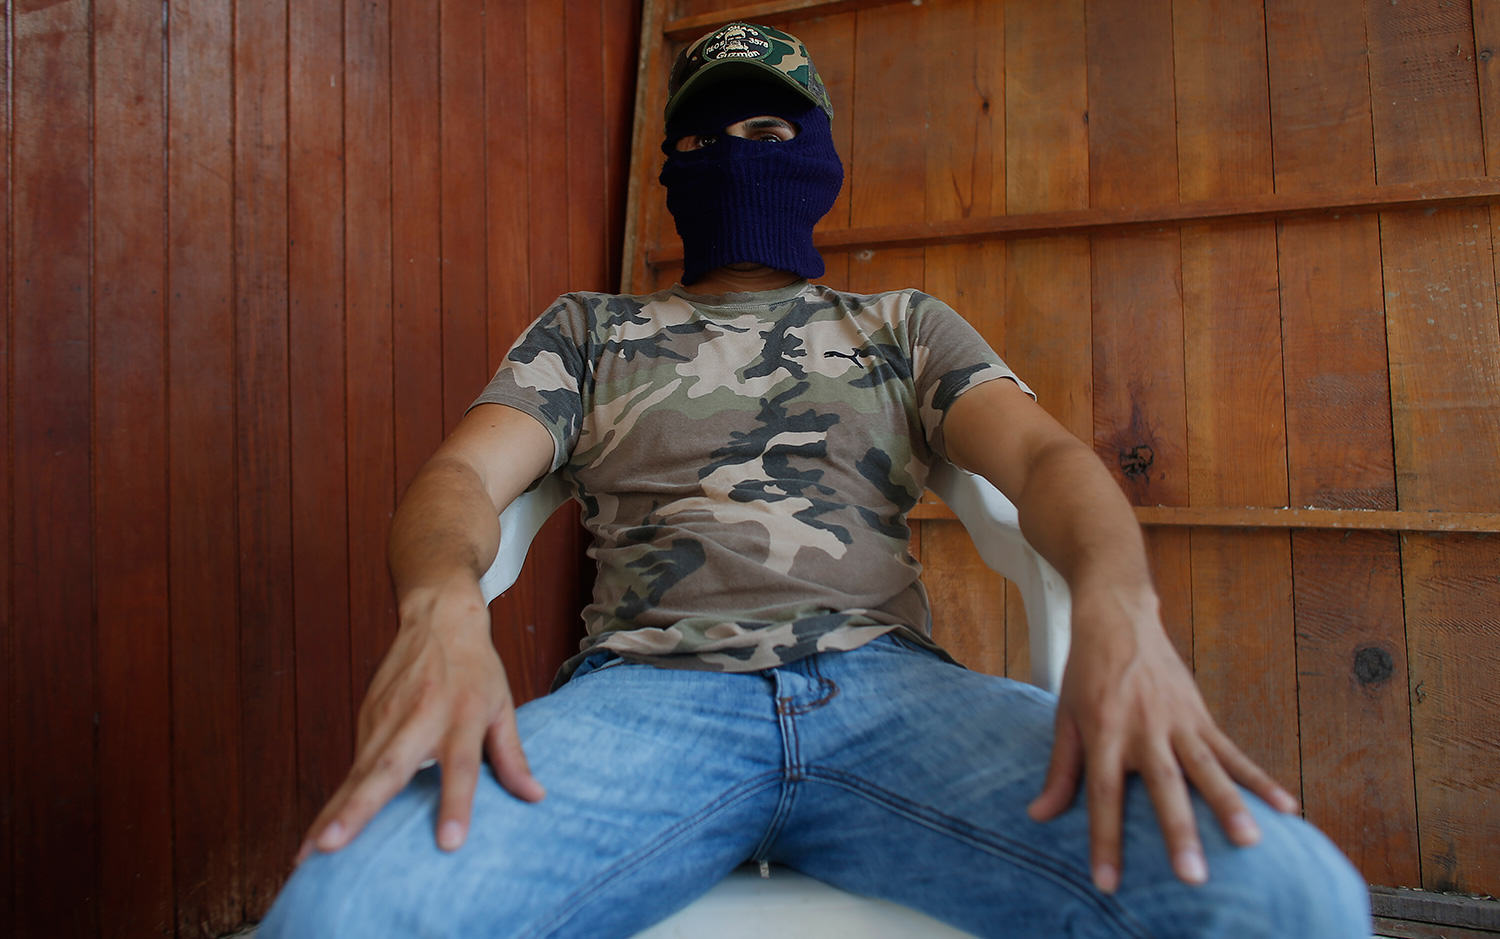 cartel1 Brutal Cartel Member Reveals How He Has Tortured And Murdered 30 People